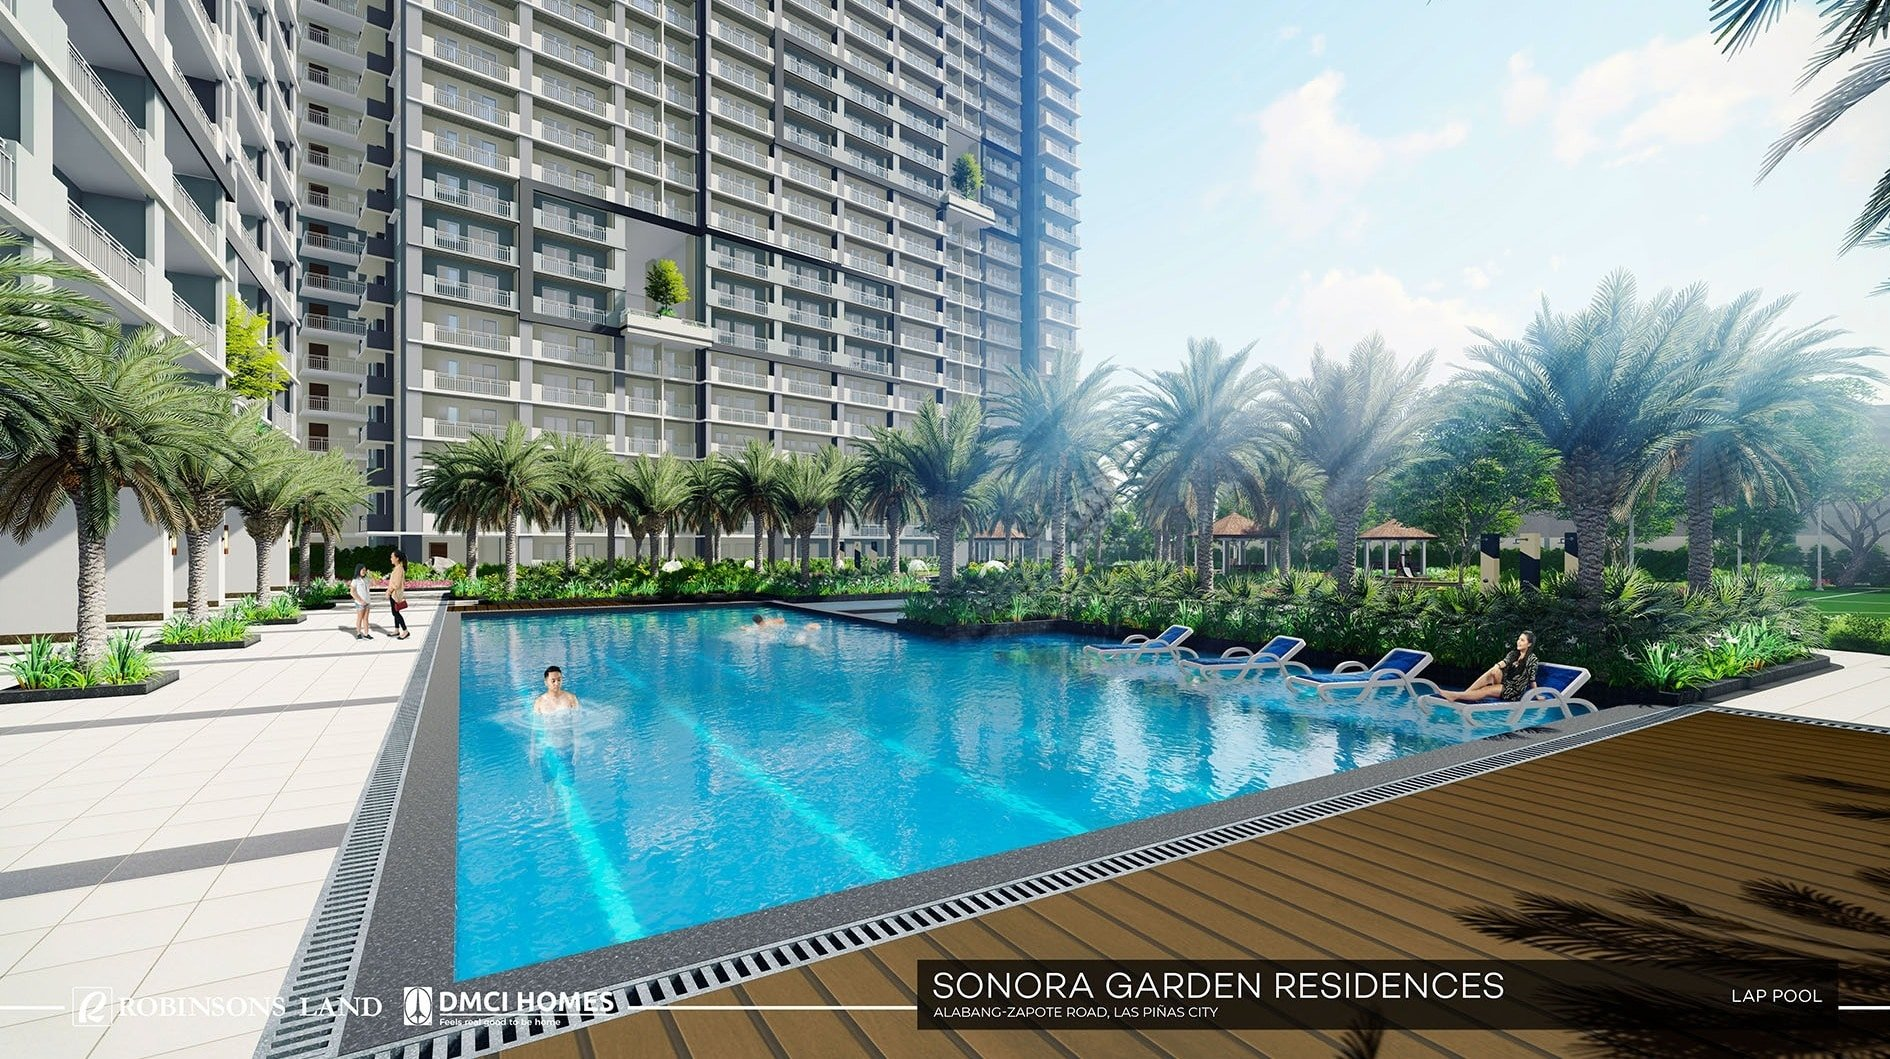 Sonora Garden Residences-Lap Pool-large